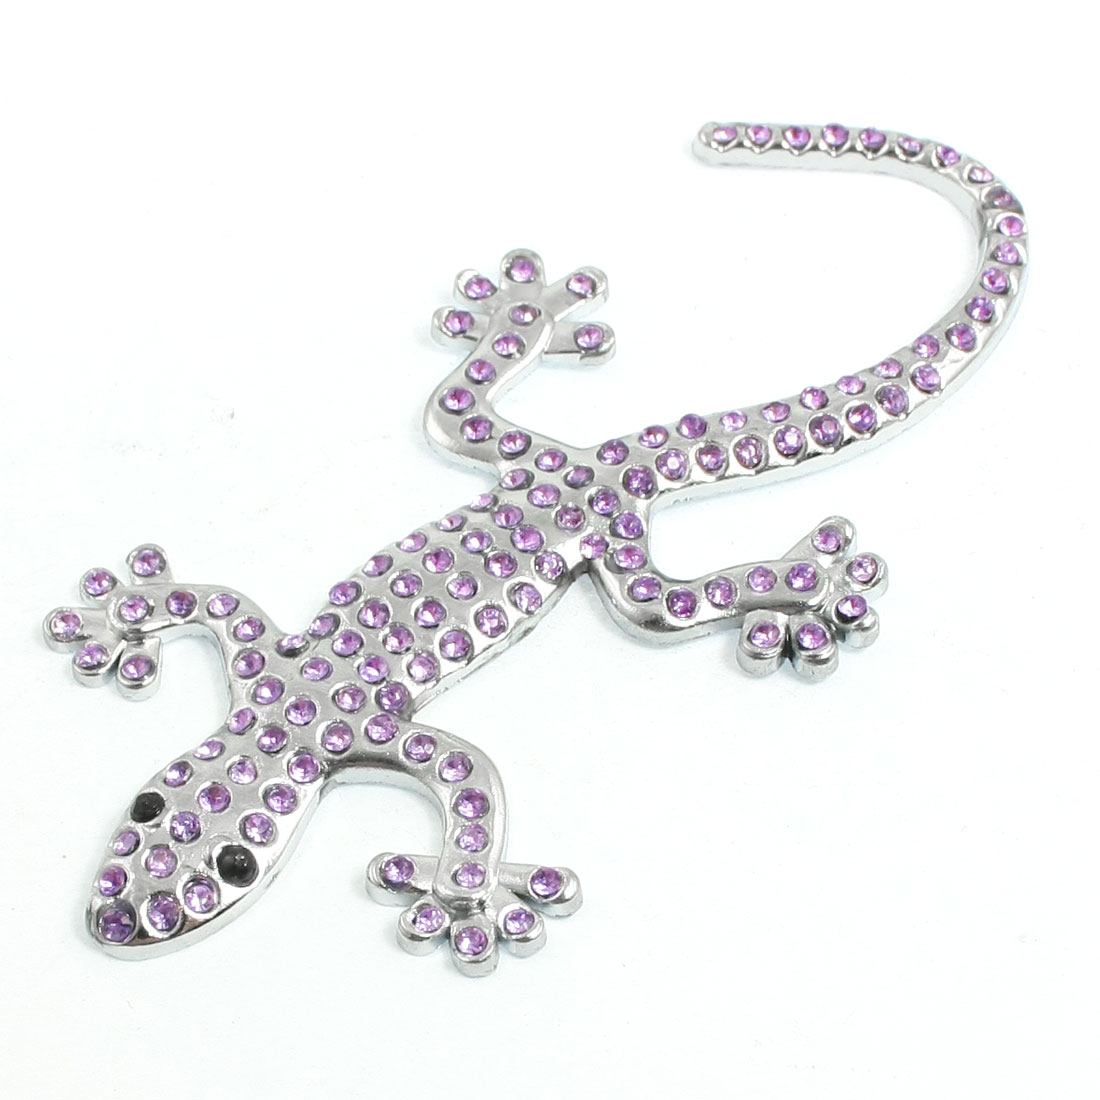 Car Purple Rhinestone Decor Silver Tone Metal Gecko Style Sticker